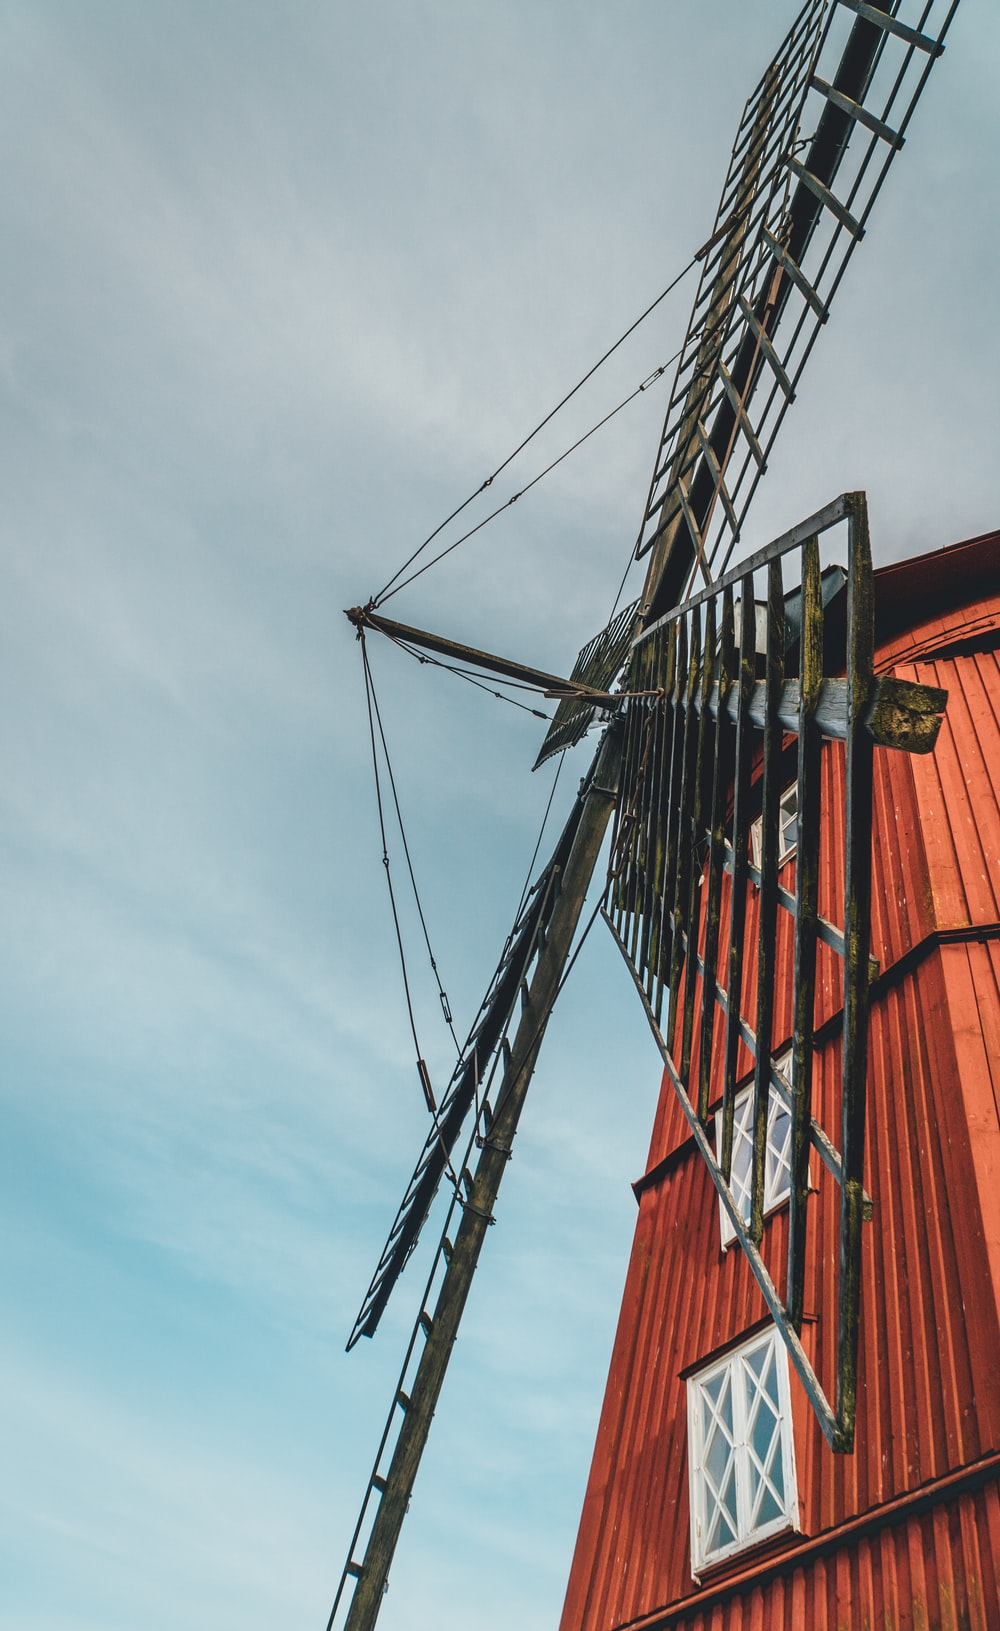 red and black windmill